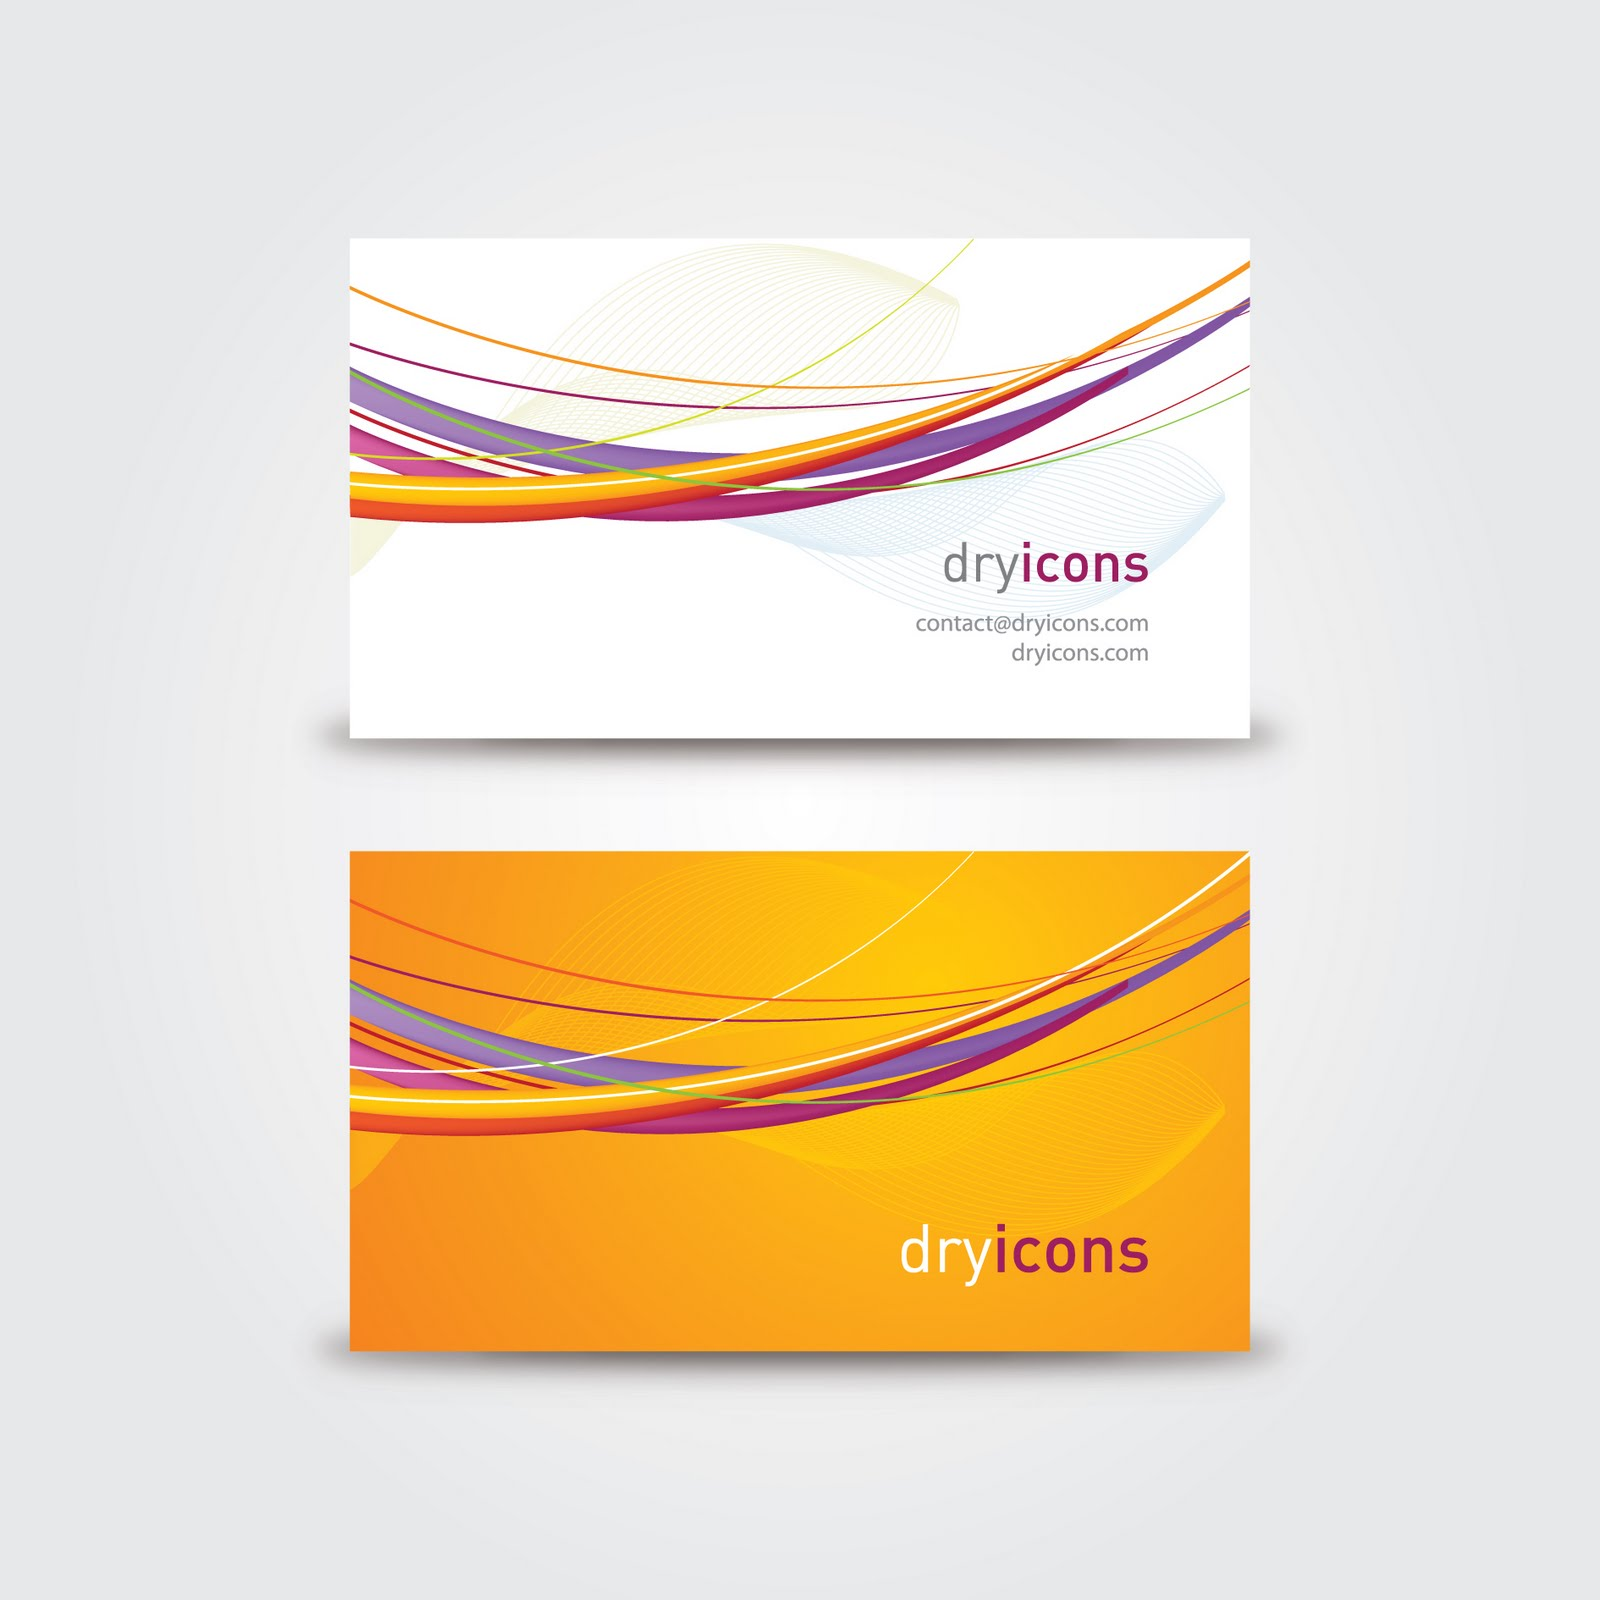 16 vector business card template images free vector business